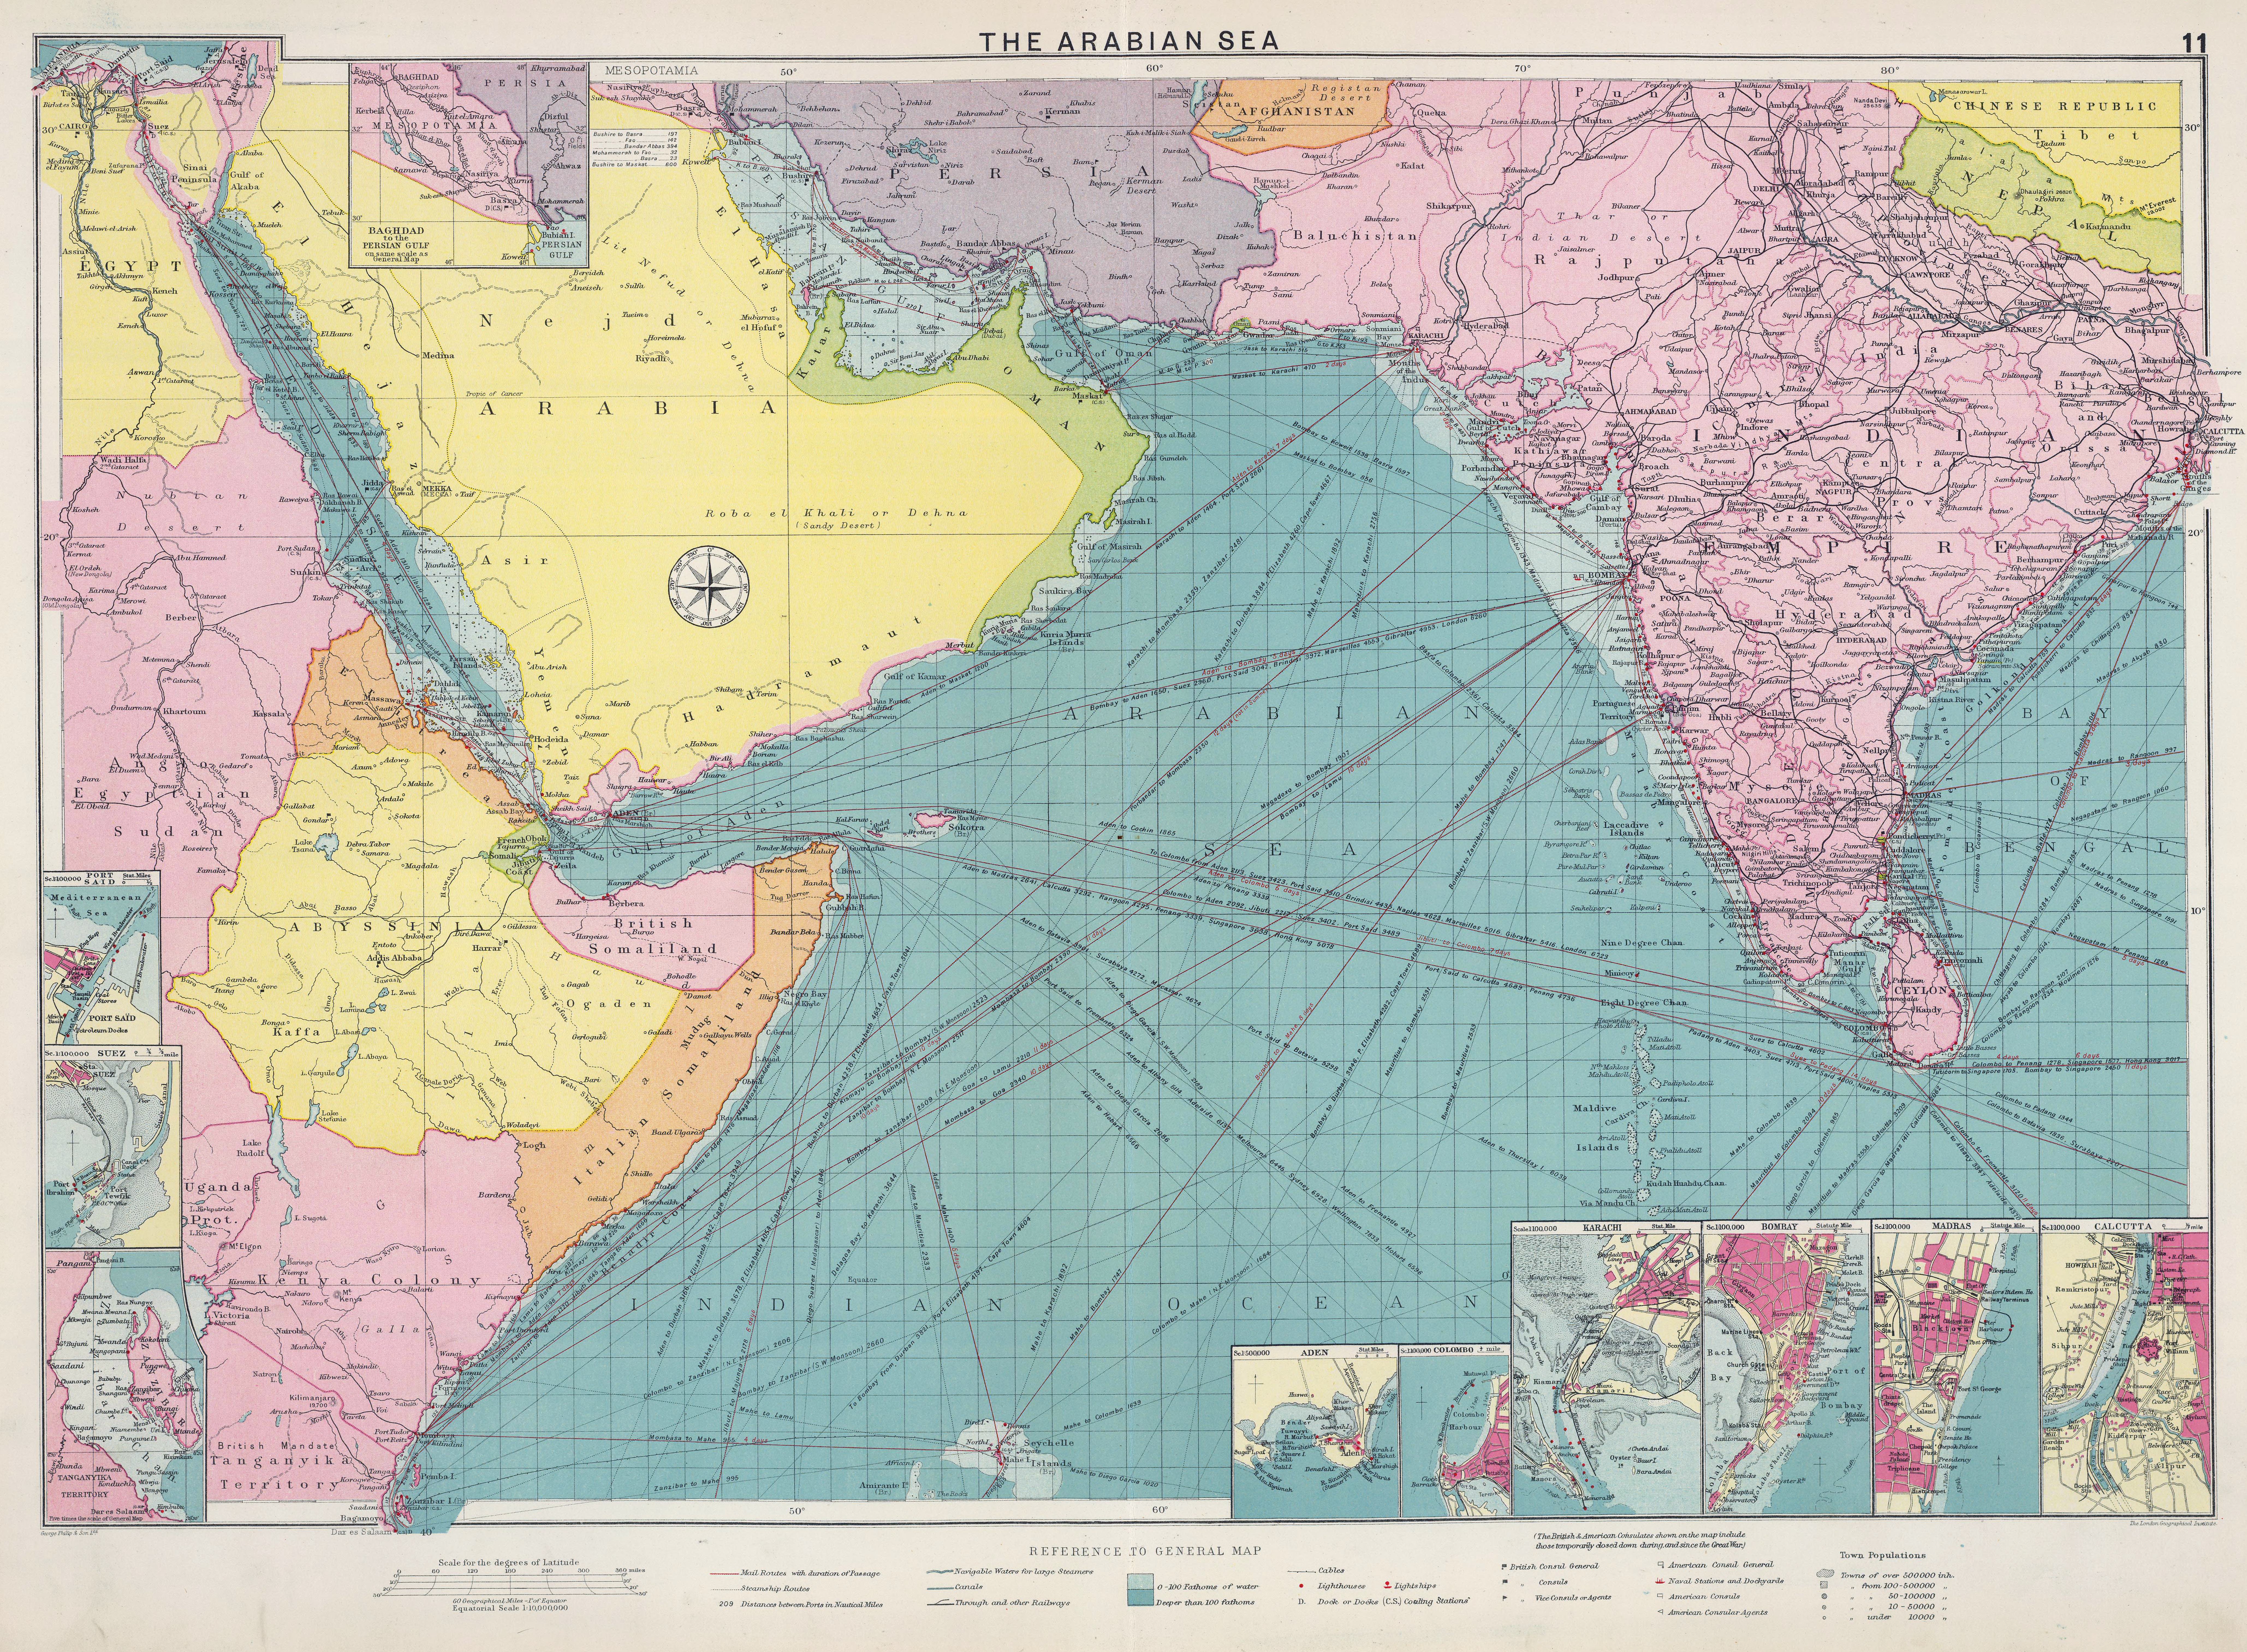 Britain's Arabian Oil Empire: Its Rise and Fall